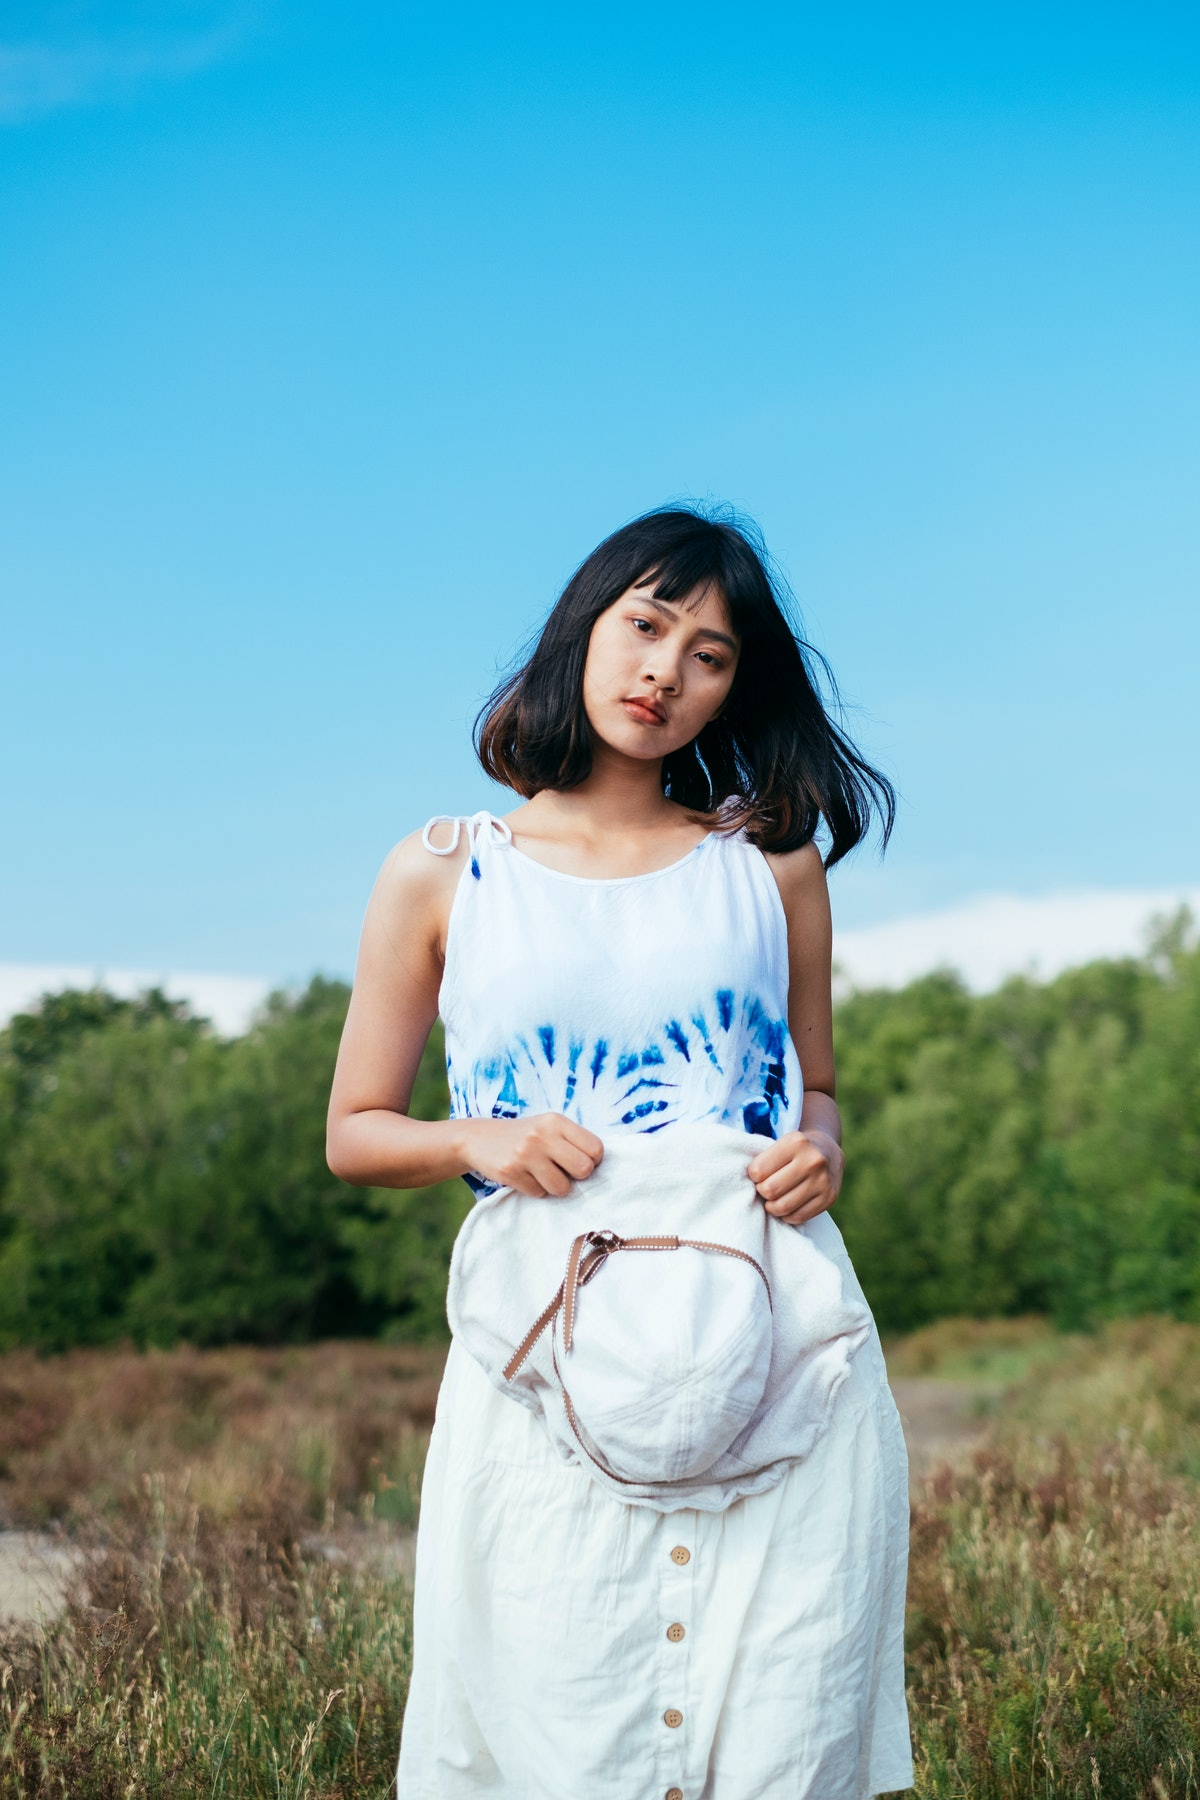 A young Asian woman wears a tie-dye tank top while standing for a photo in a grass field on a sunny day.